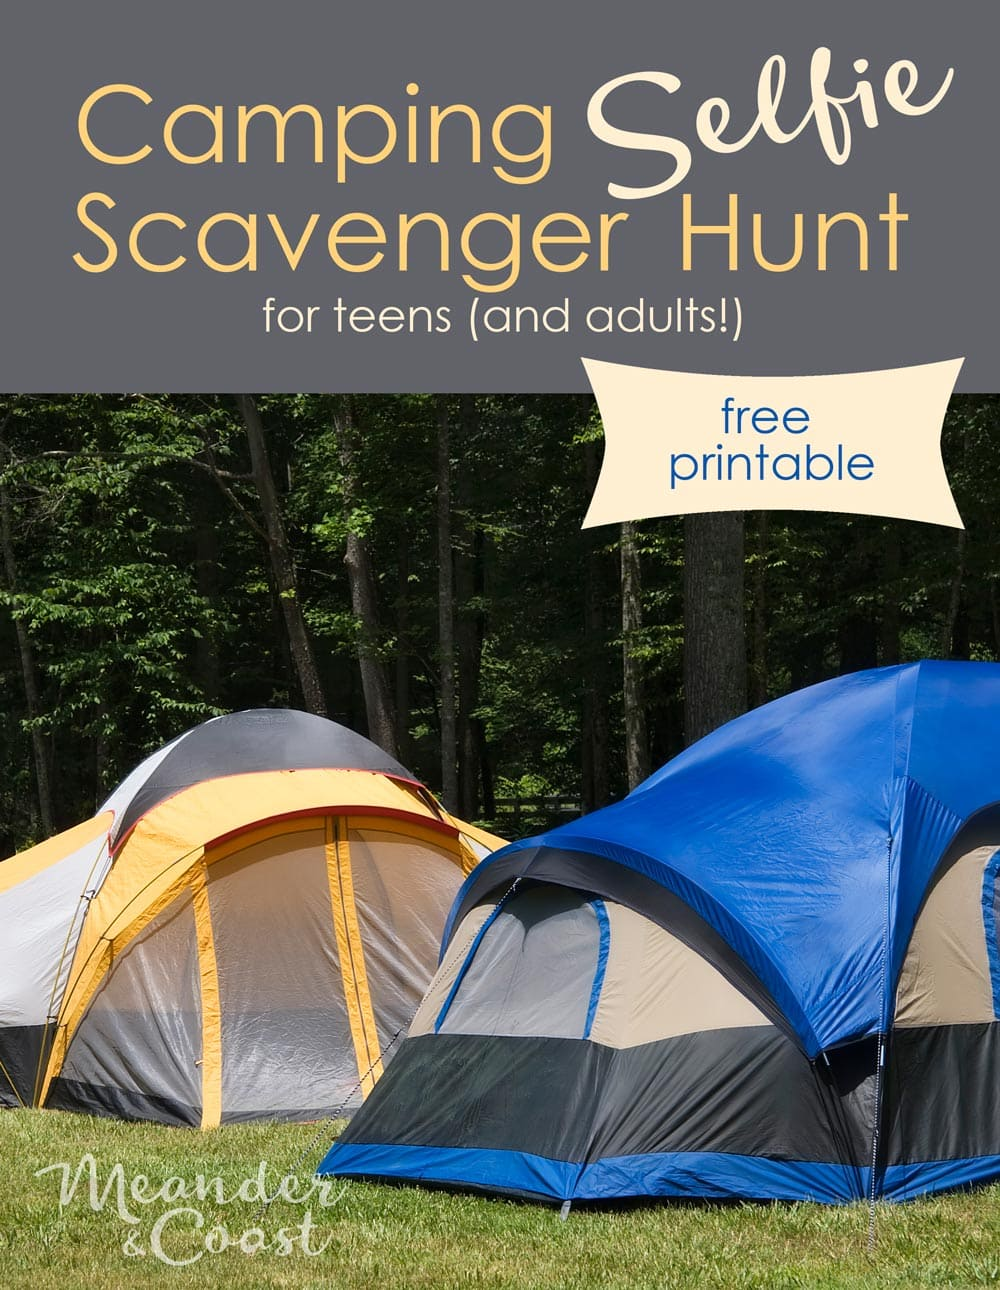 Awesome fun activity to keep teens occupied while camping! Free printable Camping Selfie Scavenger Hunt from Meander & Coast.